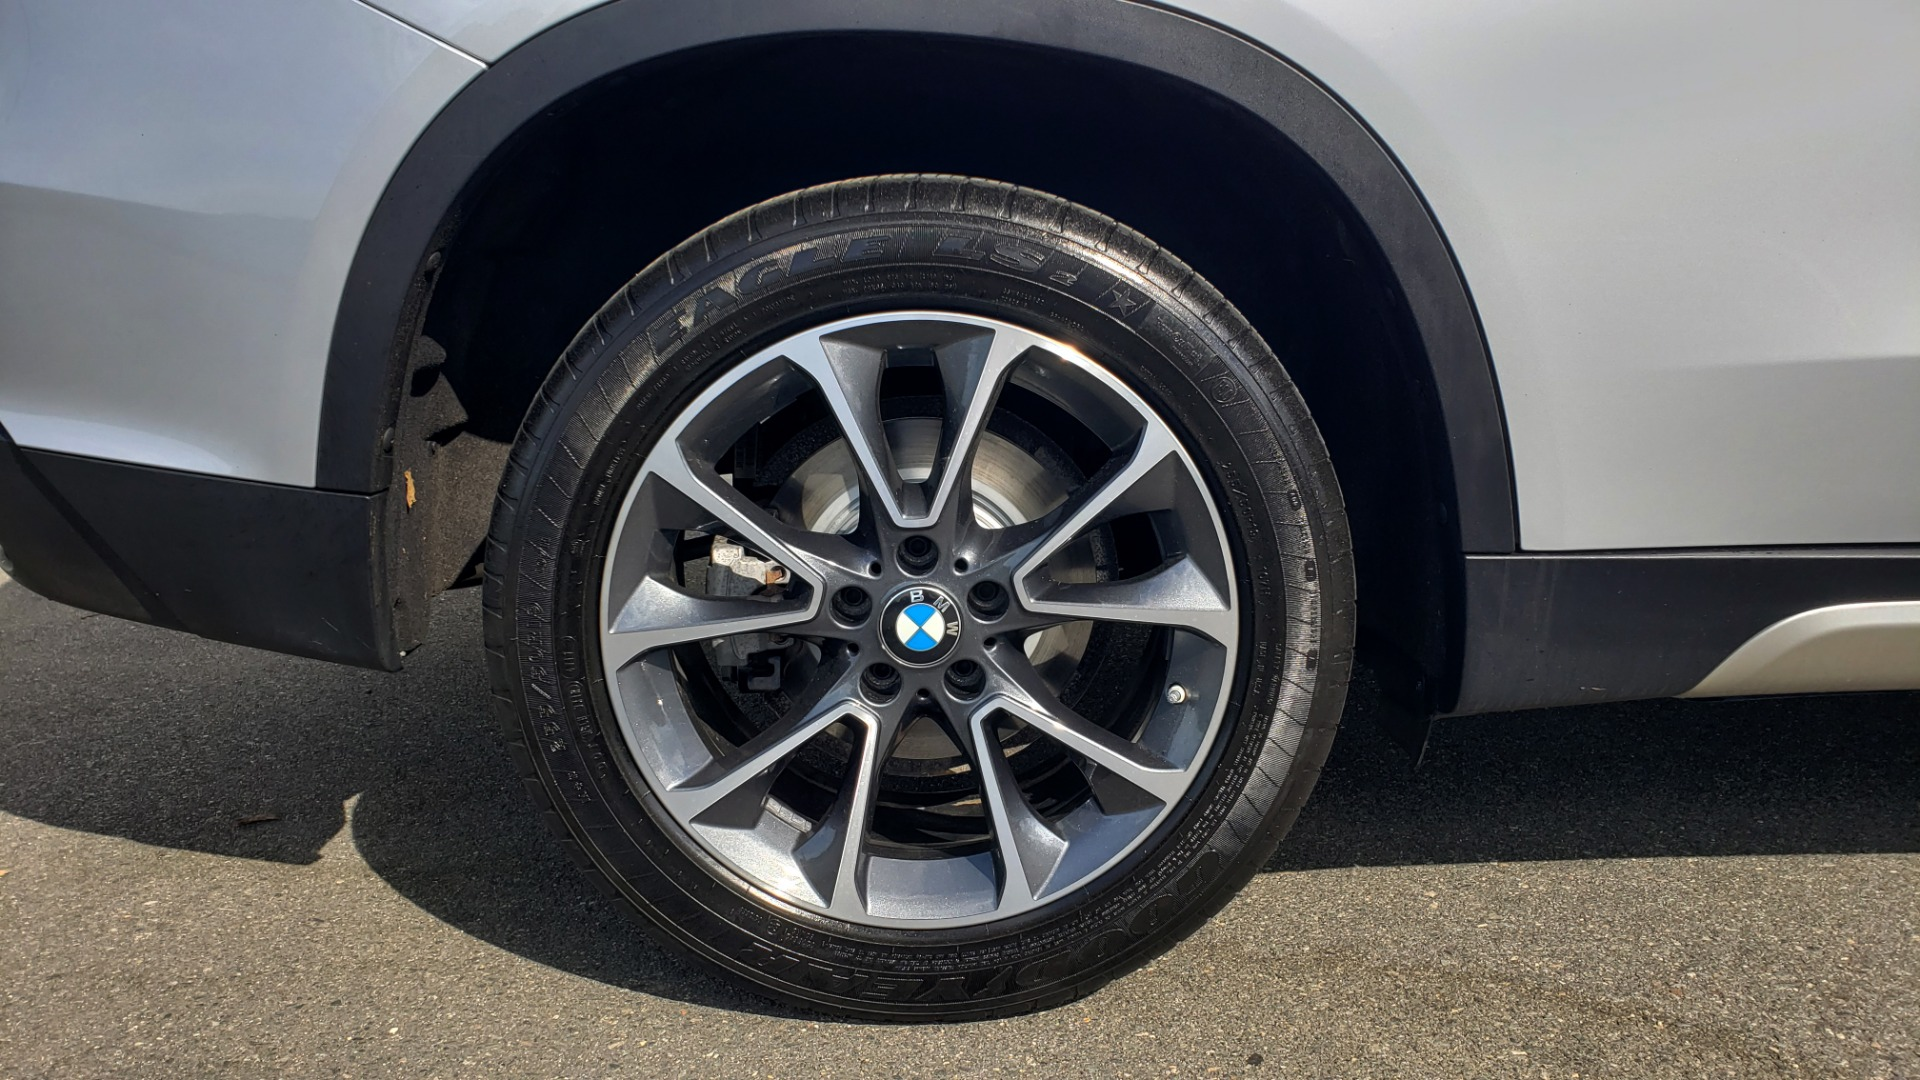 Used 2018 BMW X5 XDRIVE35I PREMIUM / NAV / PANO-ROOF / DRIVER ASST / REARVIEW for sale Sold at Formula Imports in Charlotte NC 28227 86